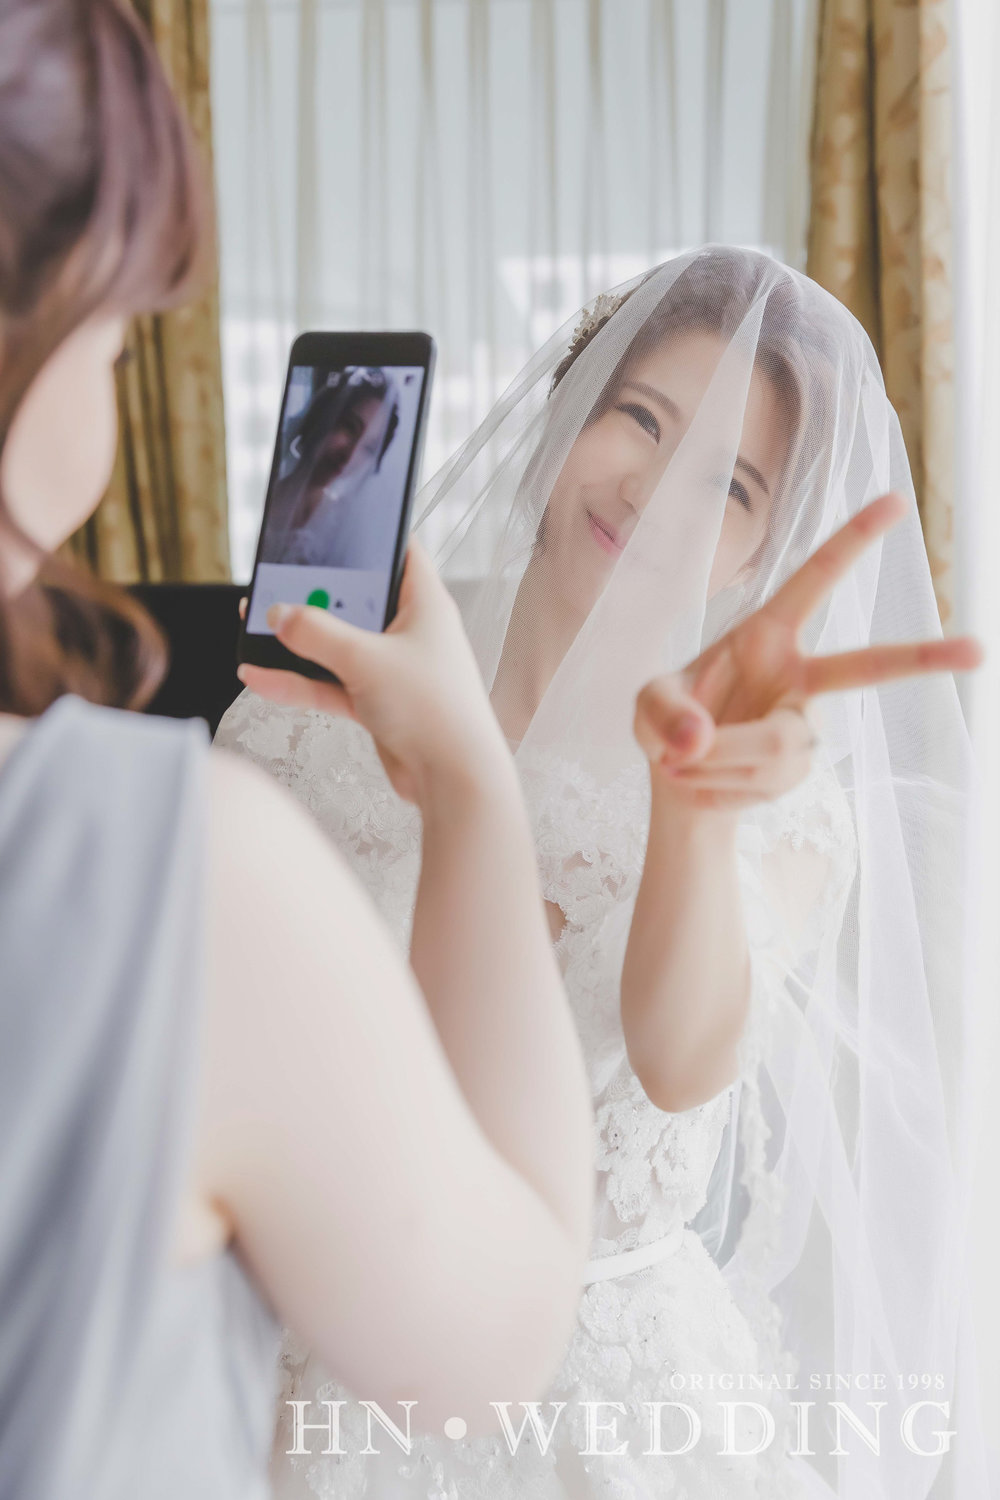 hnweddingweddingday10192018-2-20.jpg